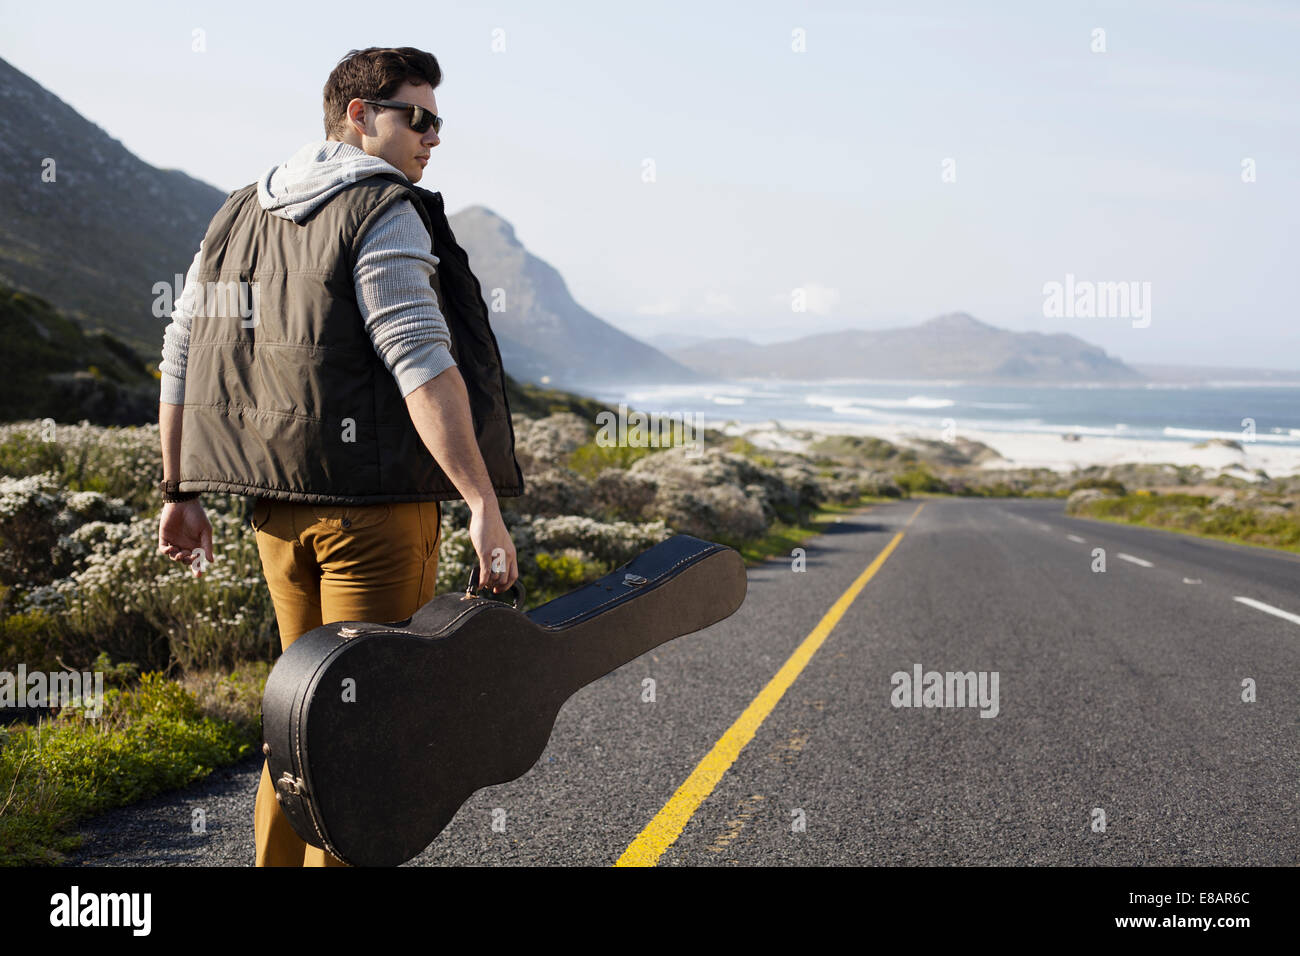 Rear View Of Young Man Walking On Coastal Road Carrying Guitar Case Cape Town Western South Africa